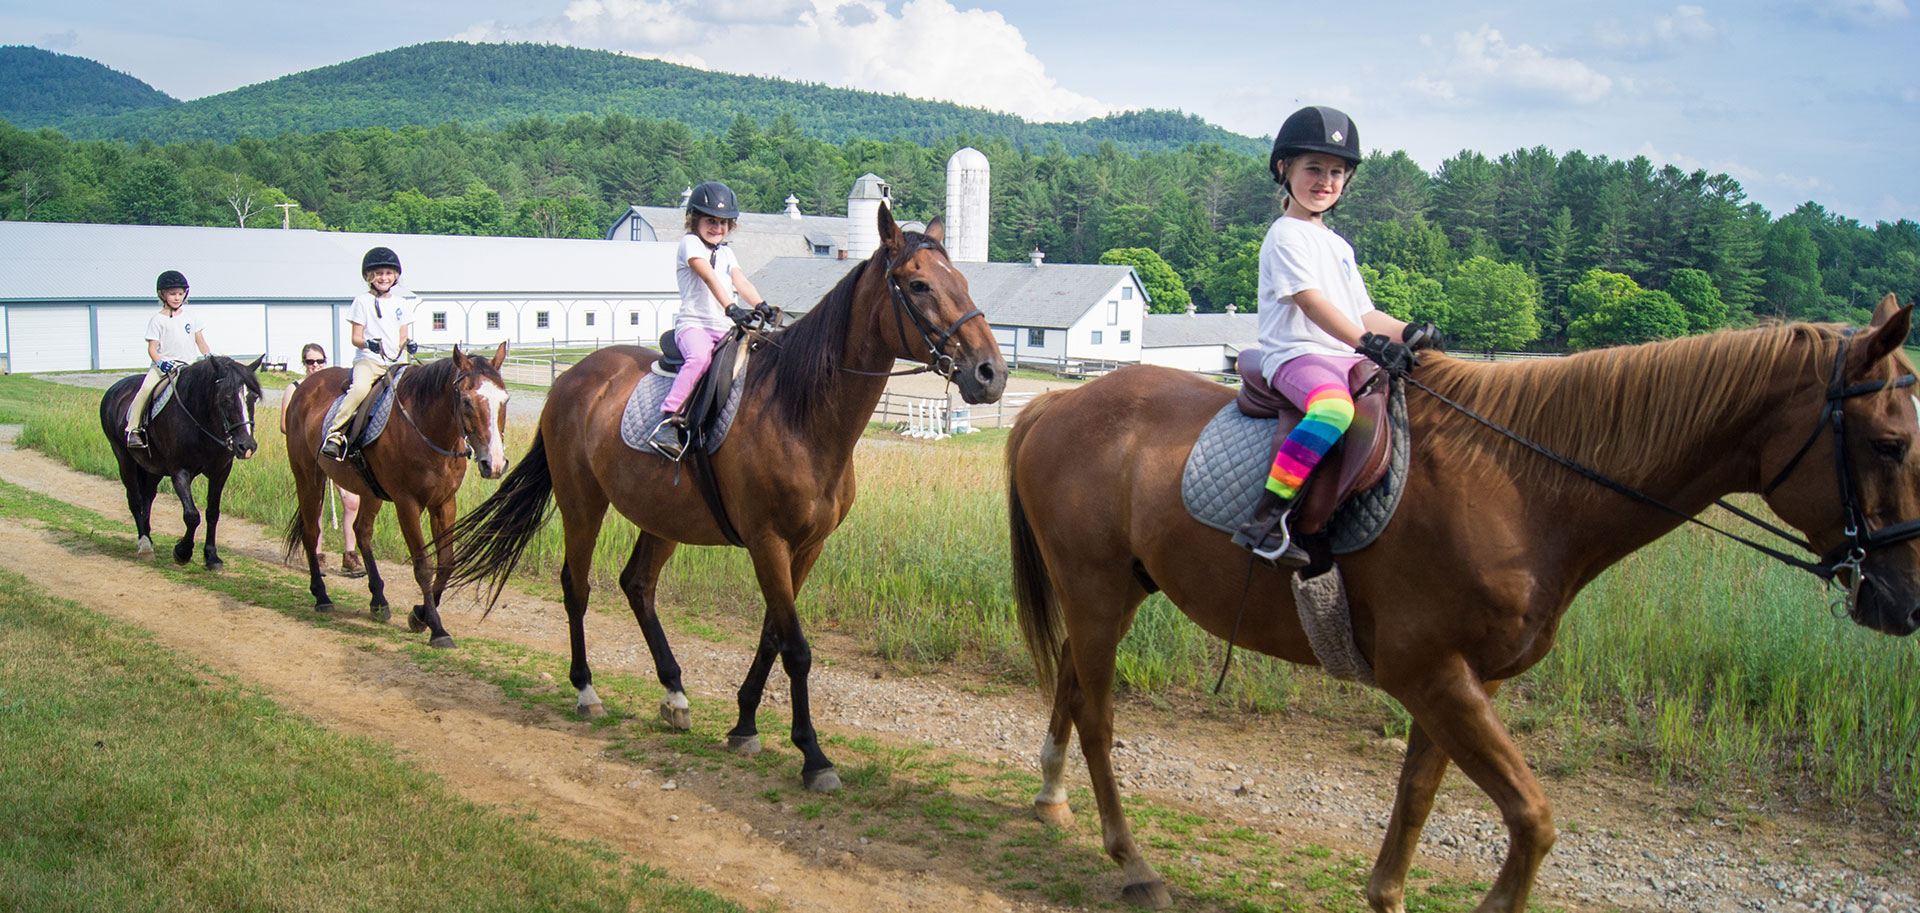 Sleep away camp horseback riding program